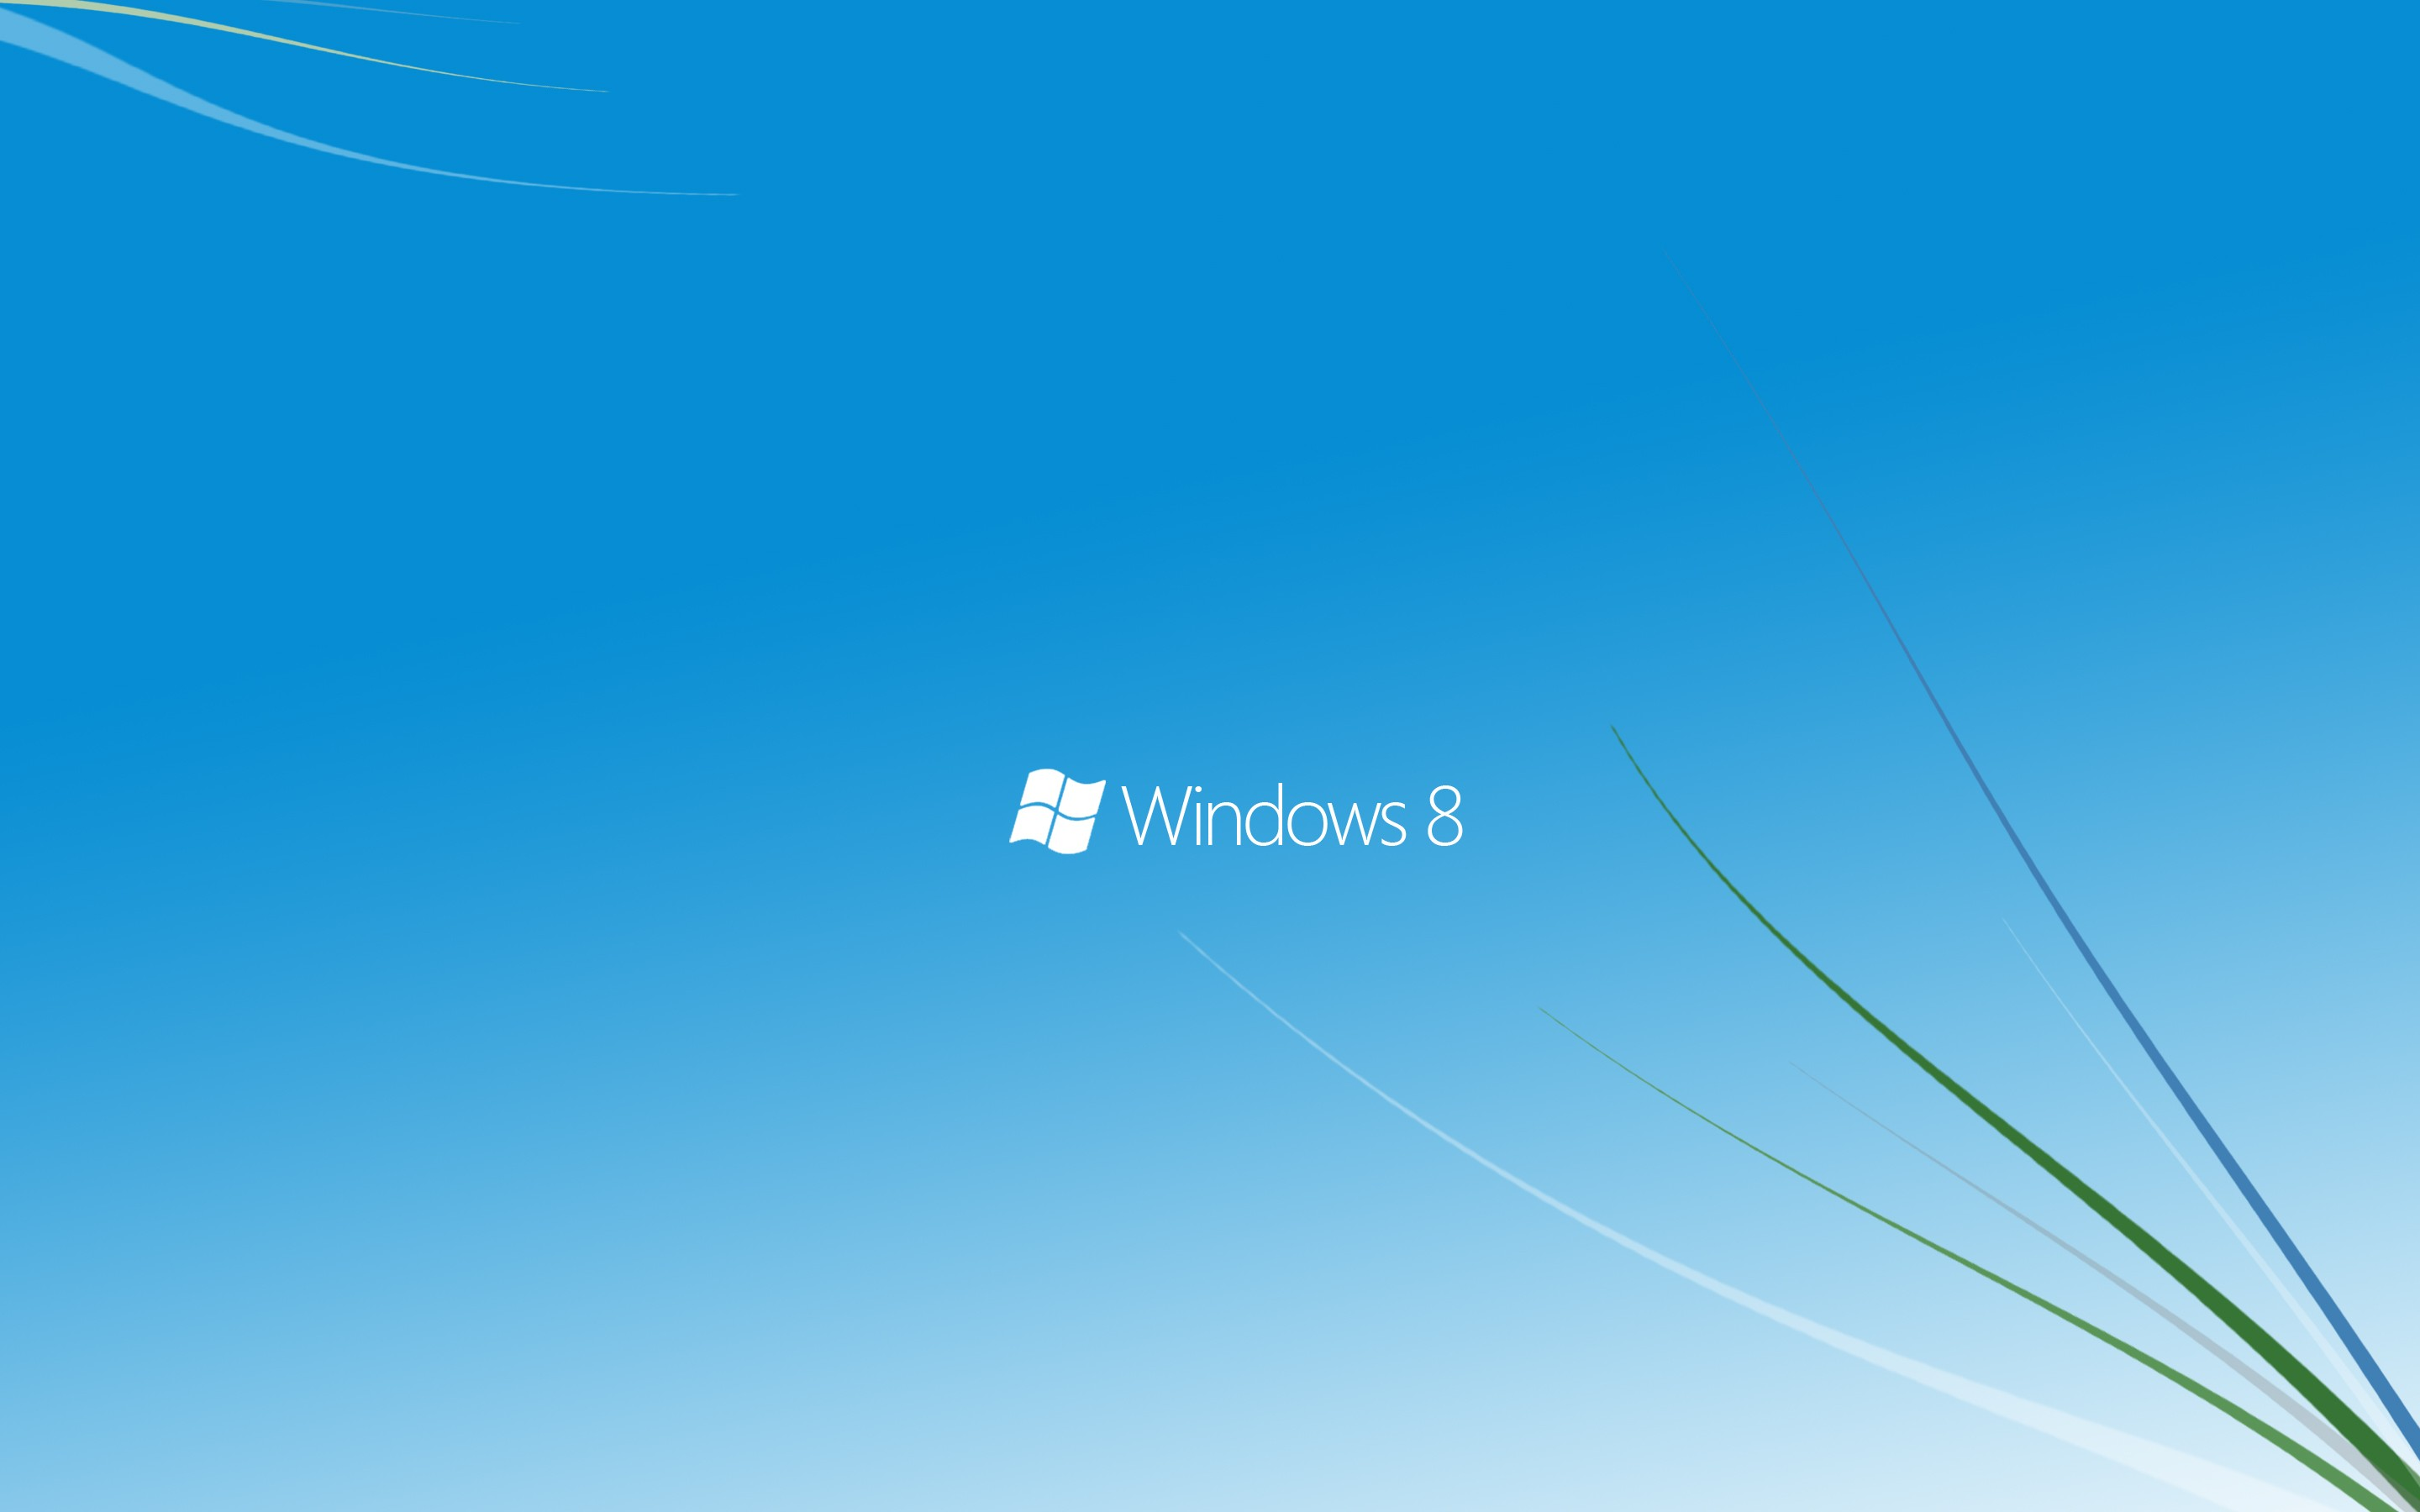 Simple Windows 8 Wallpaper